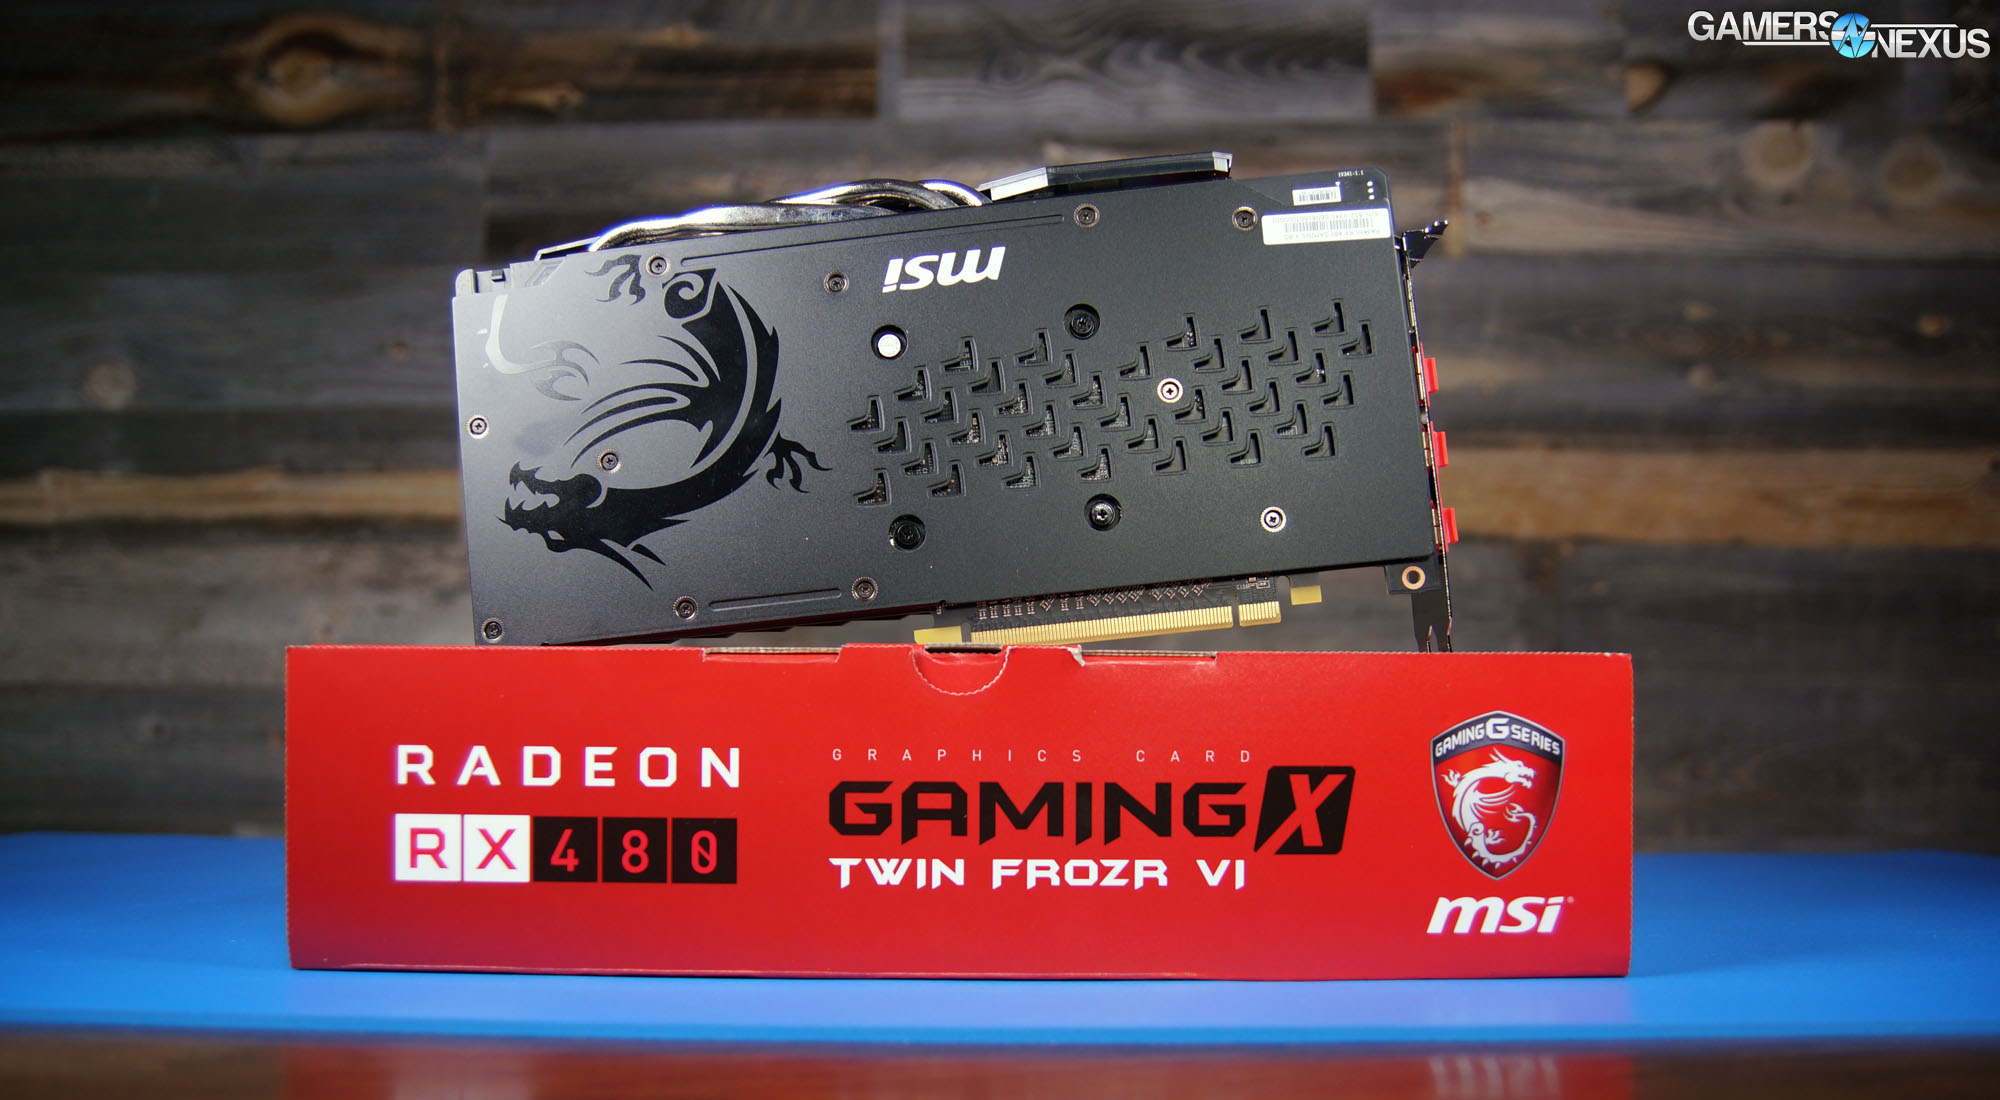 MSI RX 480 Gaming X Review & Benchmark | GamersNexus